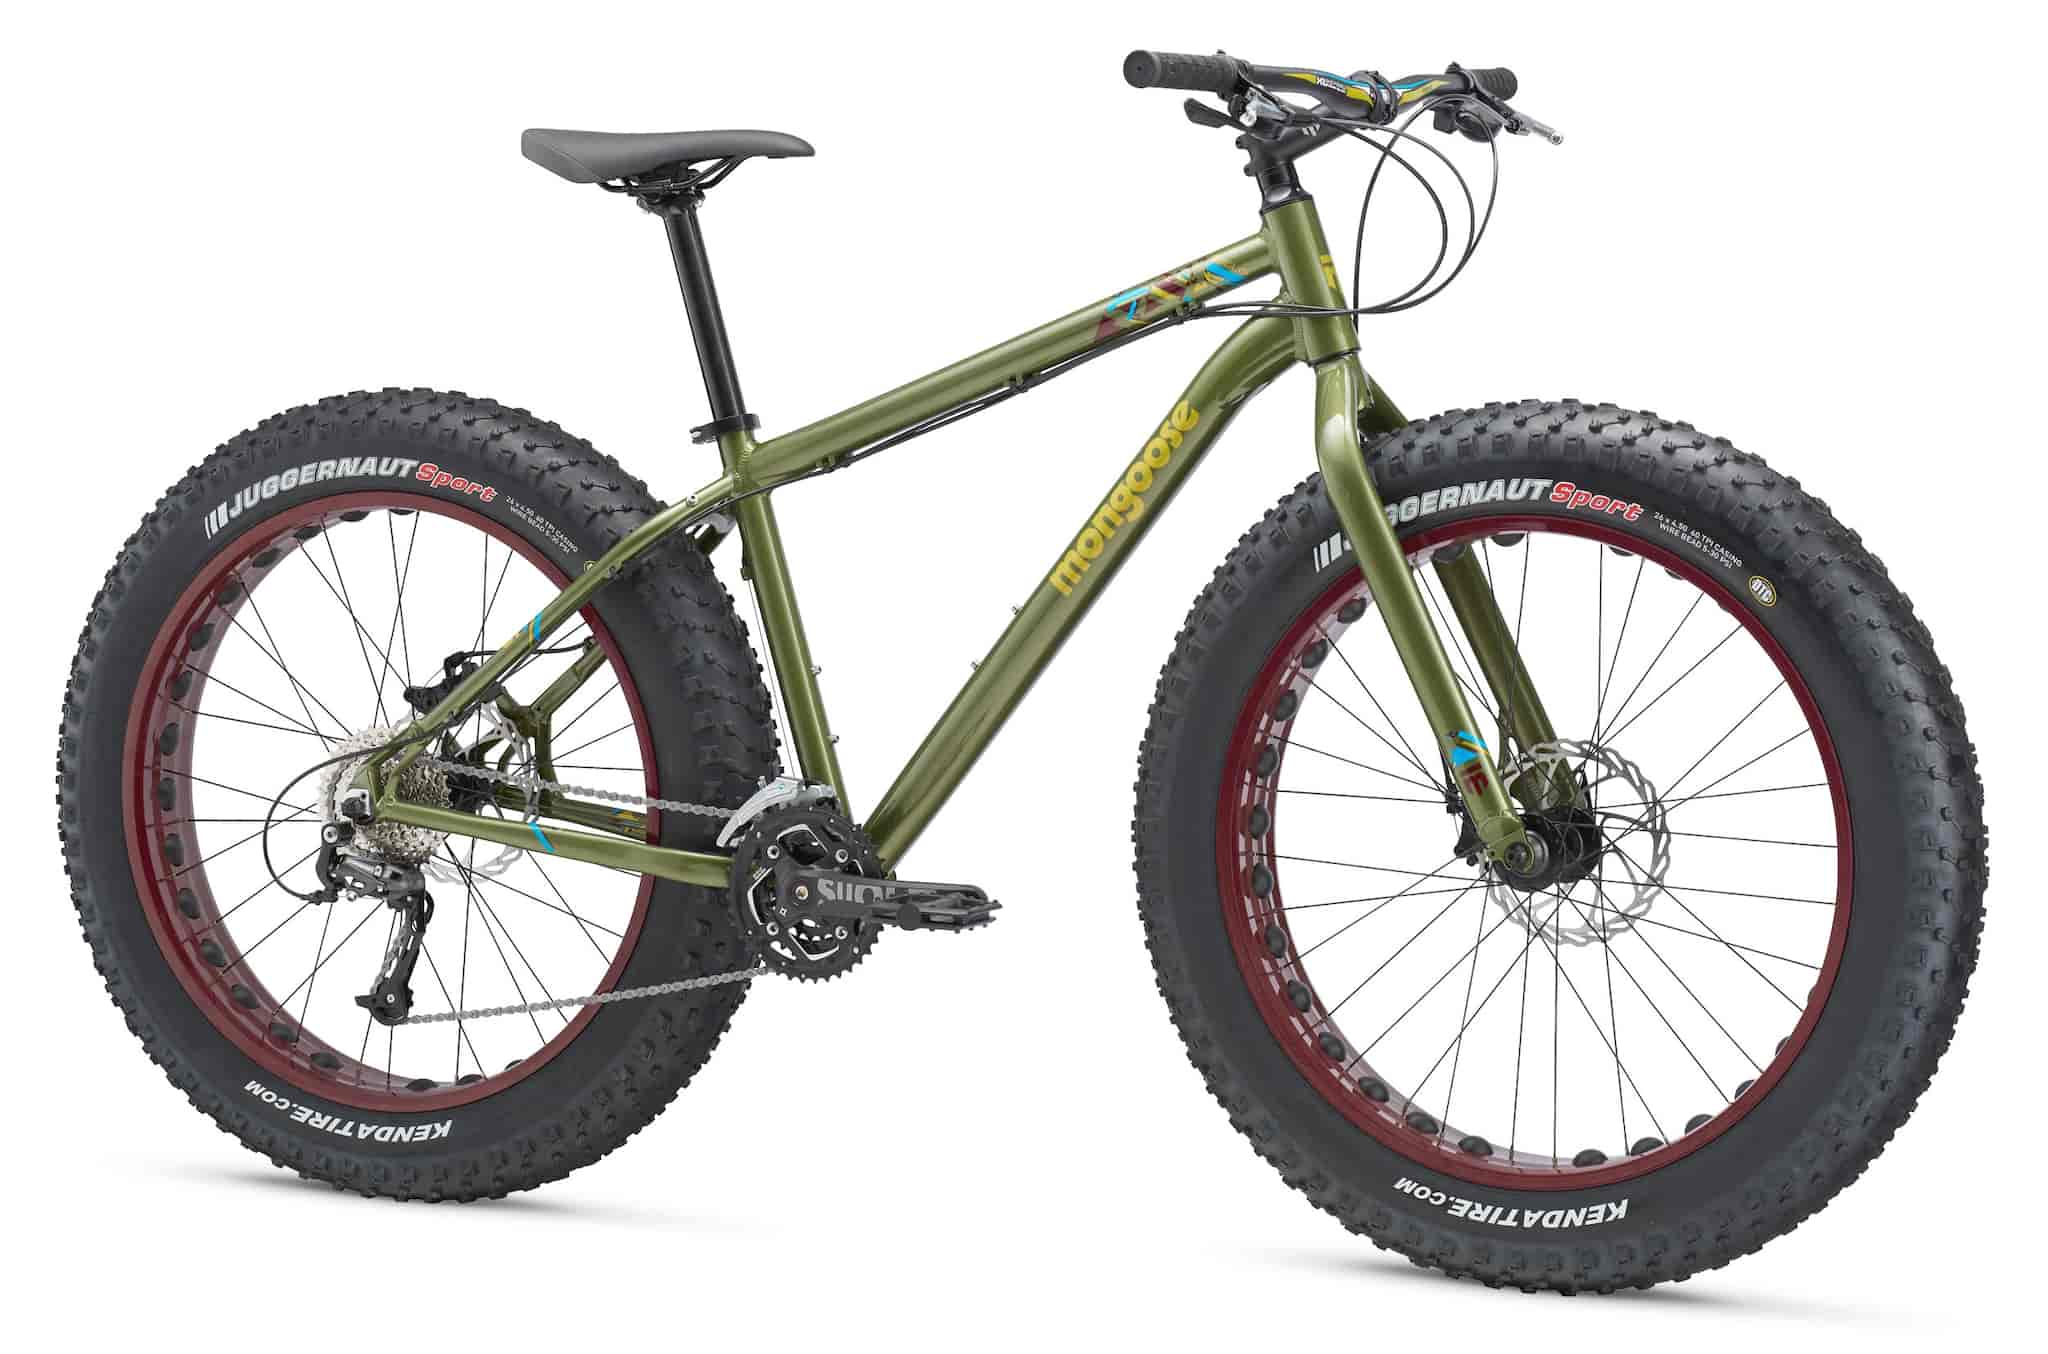 Mongoose Fat Bike Argus Sport M Bicycle Green Features Reviews Online In India Justdial